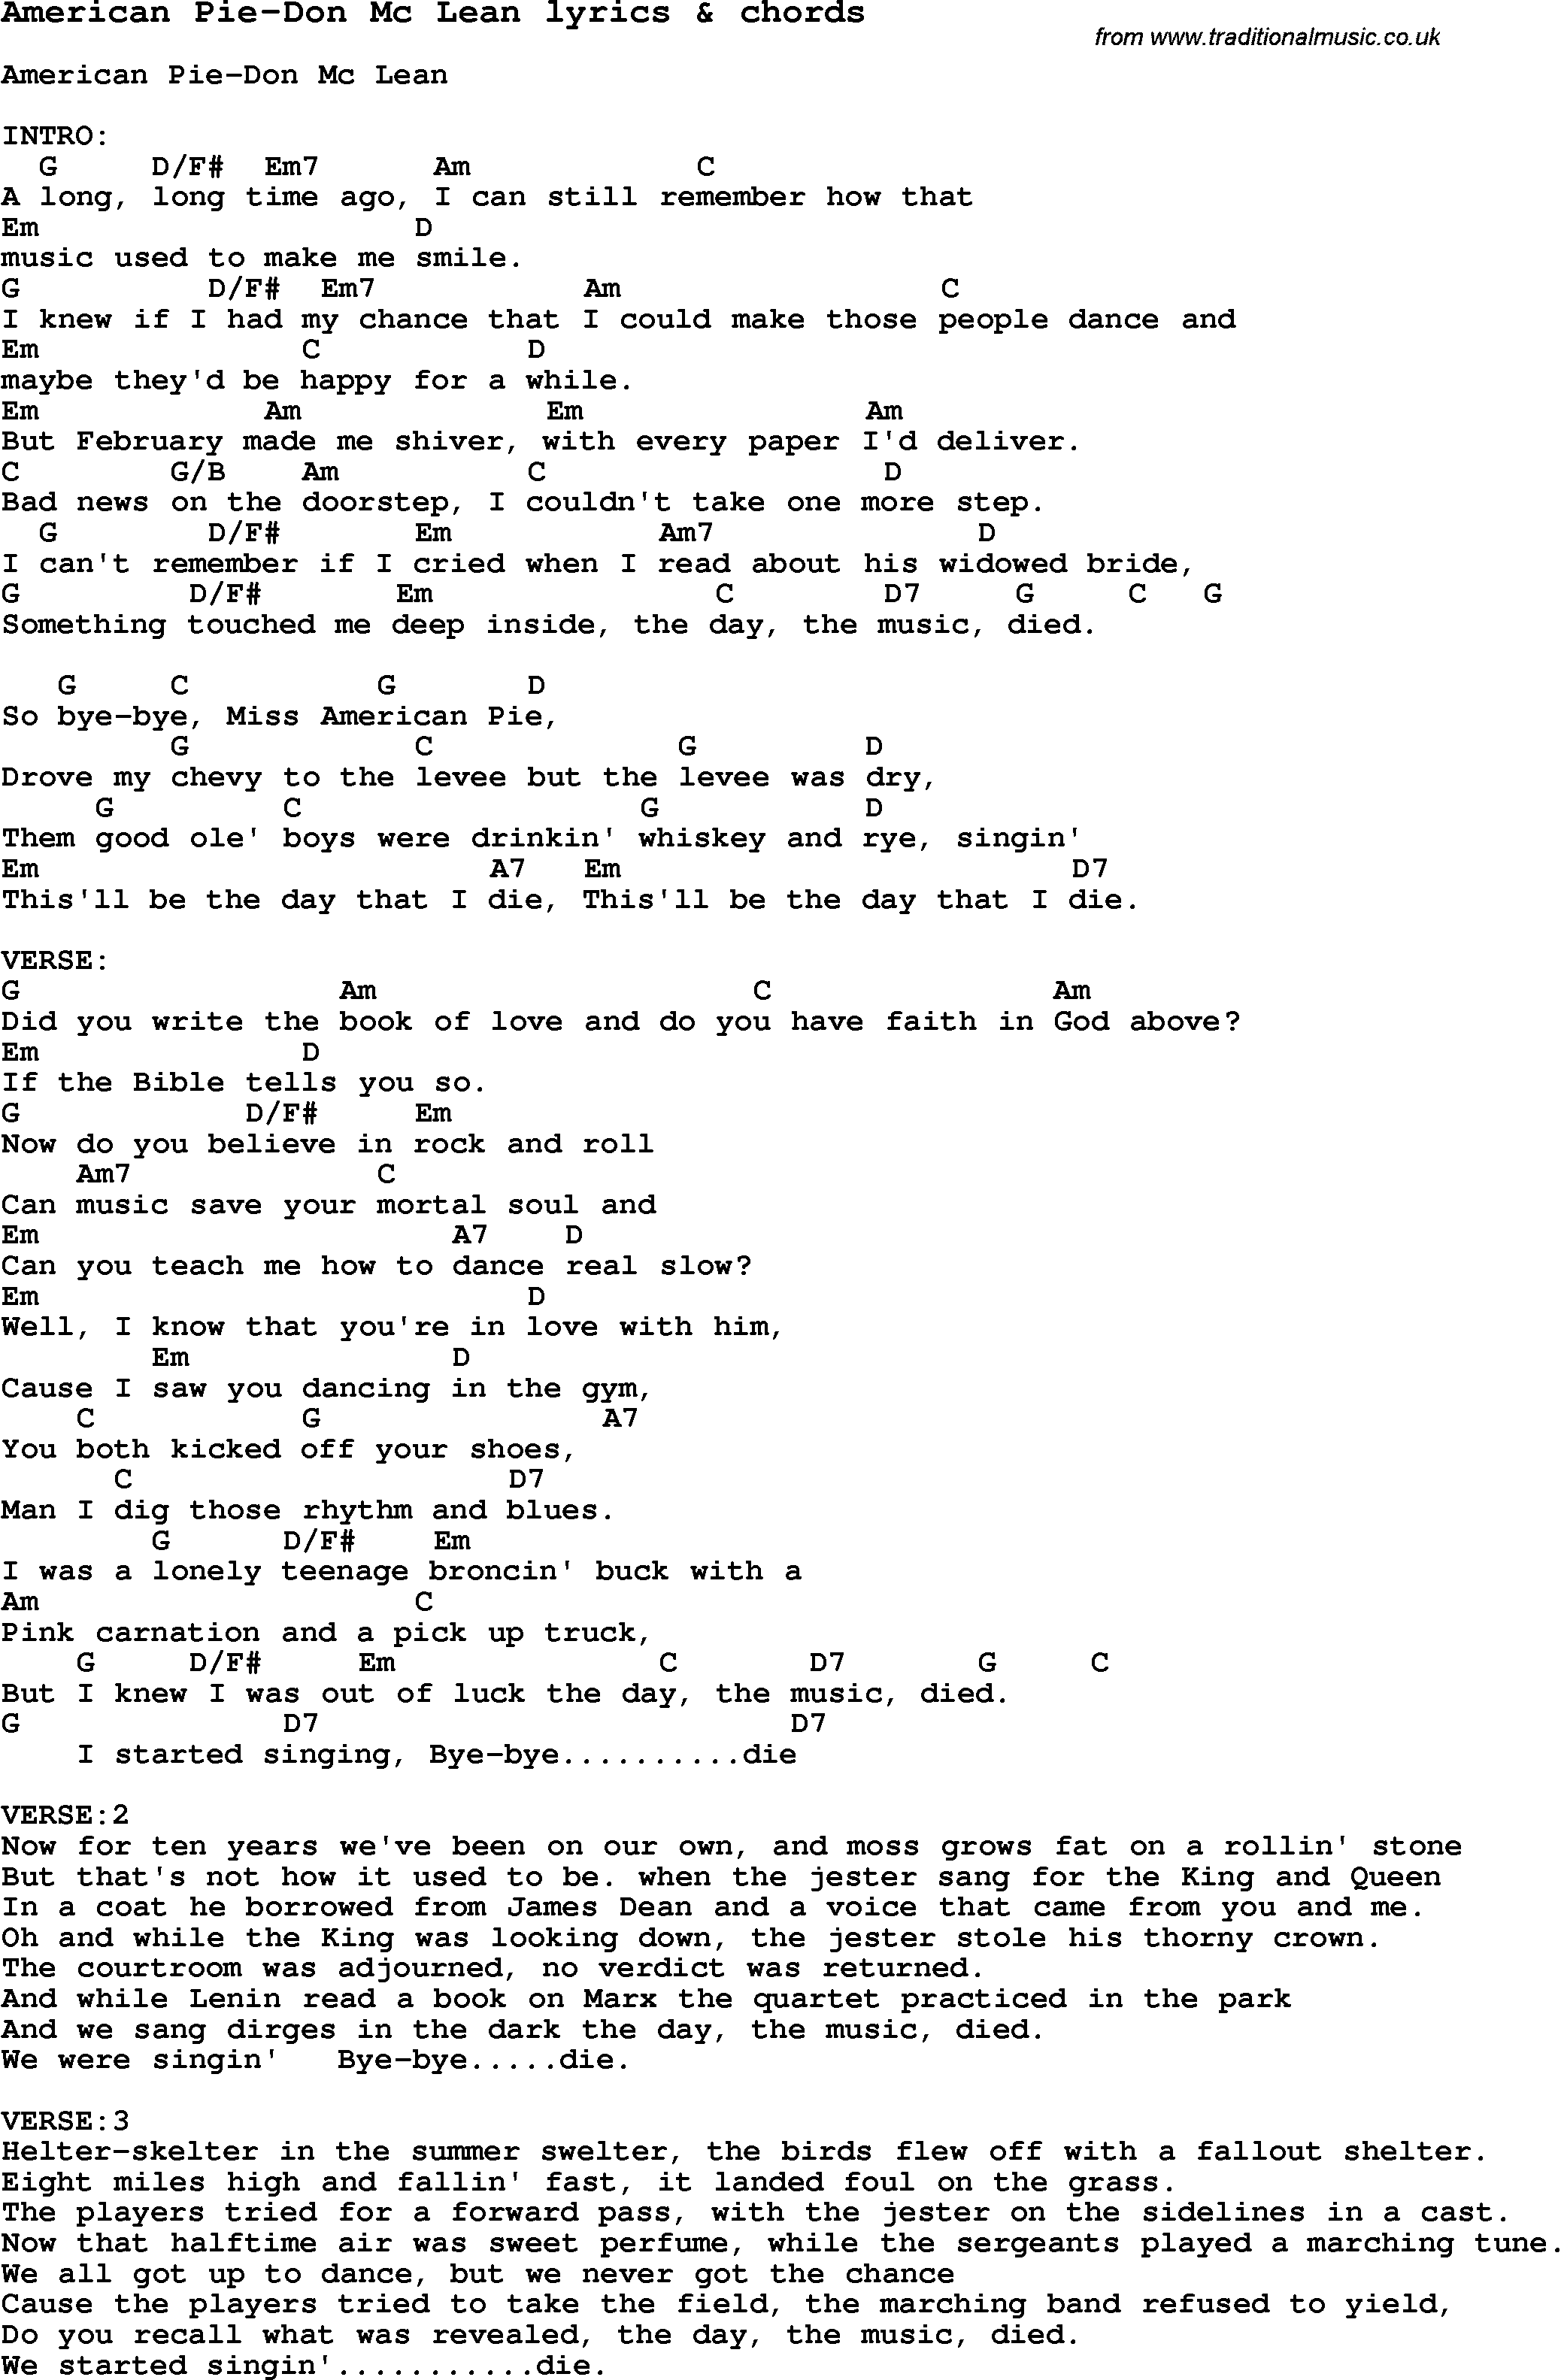 Love song lyrics foramerican pie don mc lean with chords love song lyrics for american pie don mc lean with chords for ukulele hexwebz Gallery